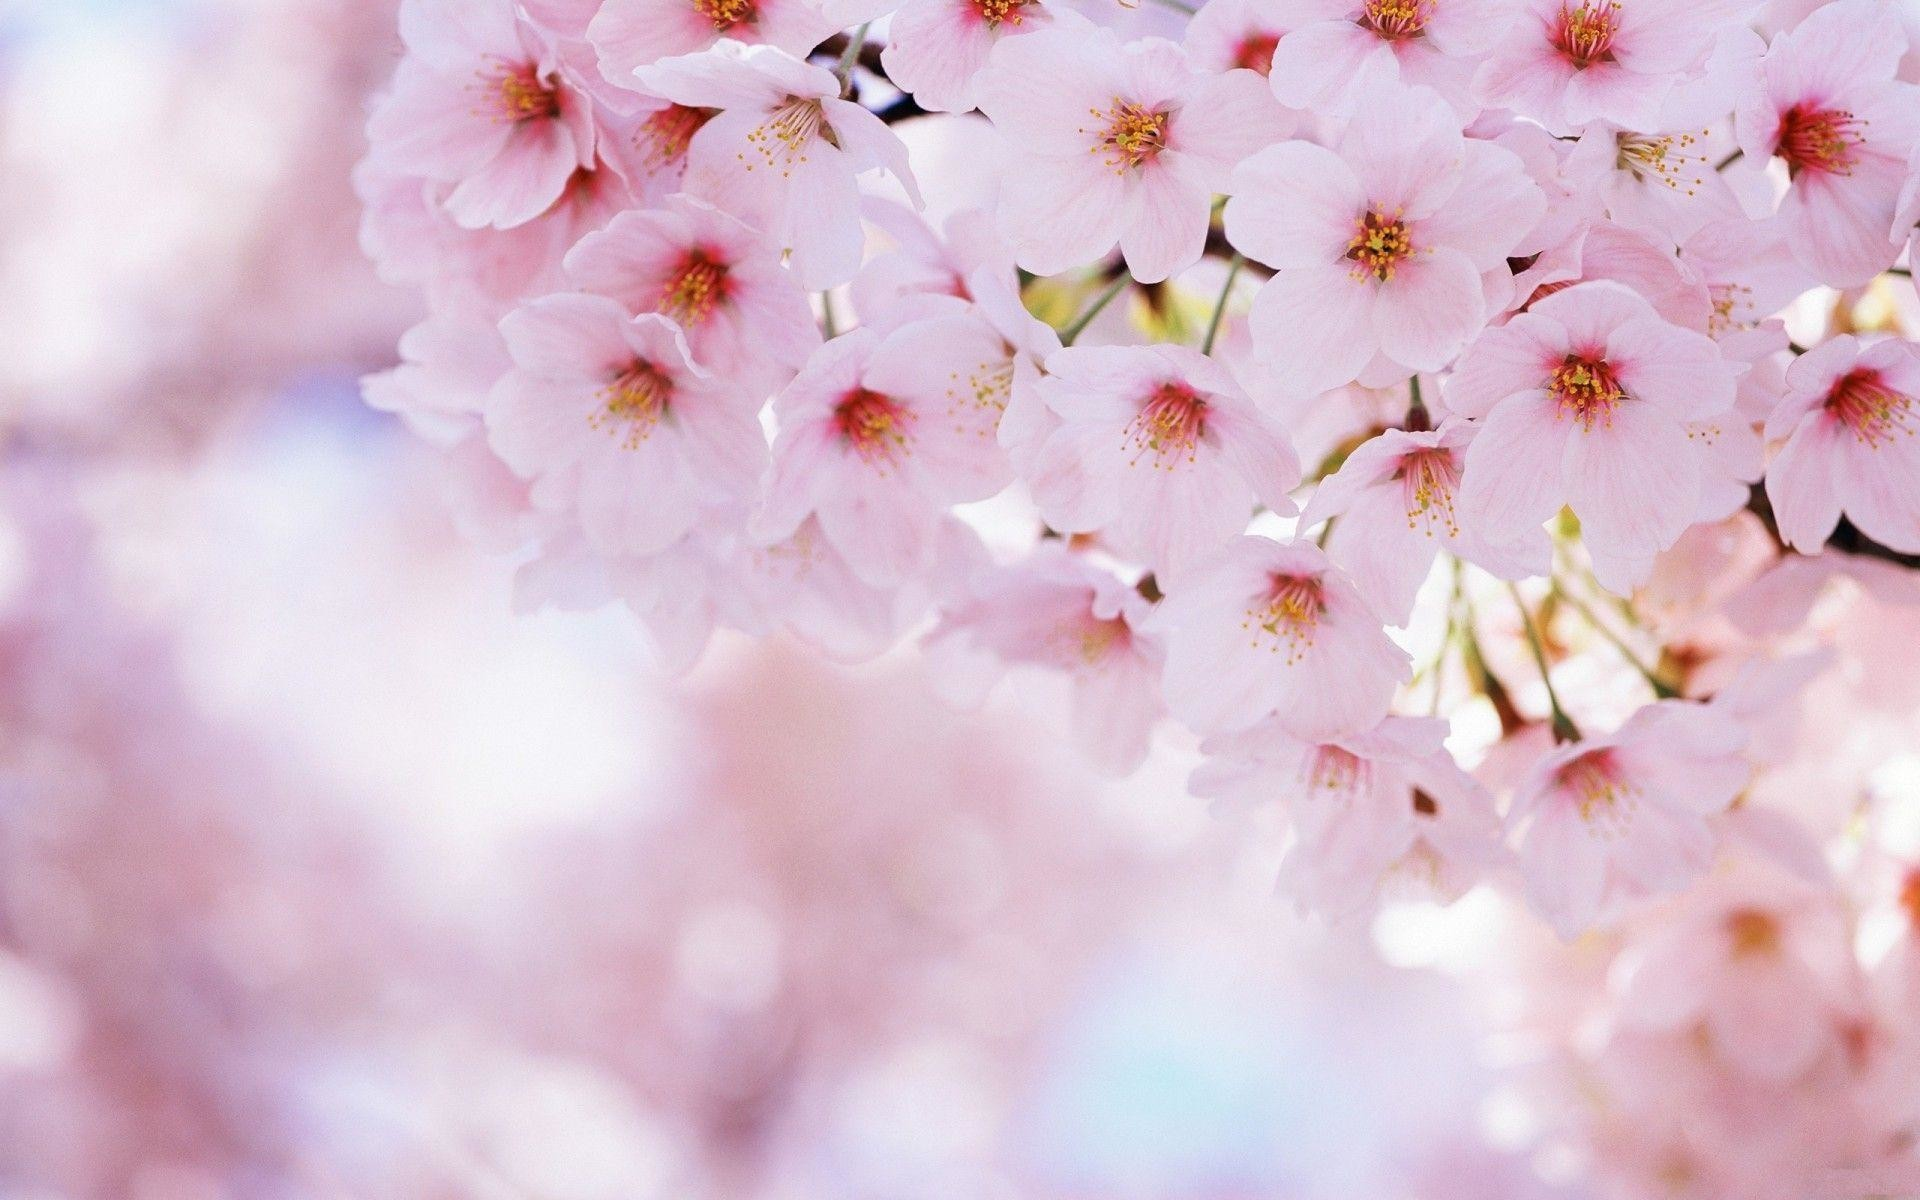 Wallpapers For > Anime Cherry Blossoms Wallpaper